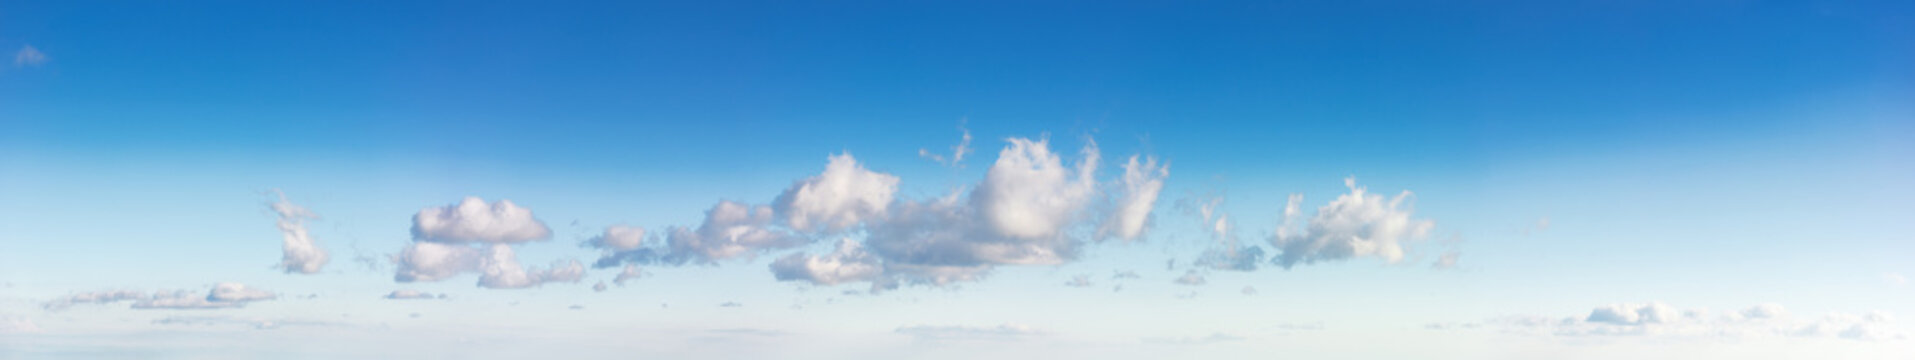 beautiful cloudscape in evening light. fluffy clouds on the blue sky. panoramic picture useful for compositing